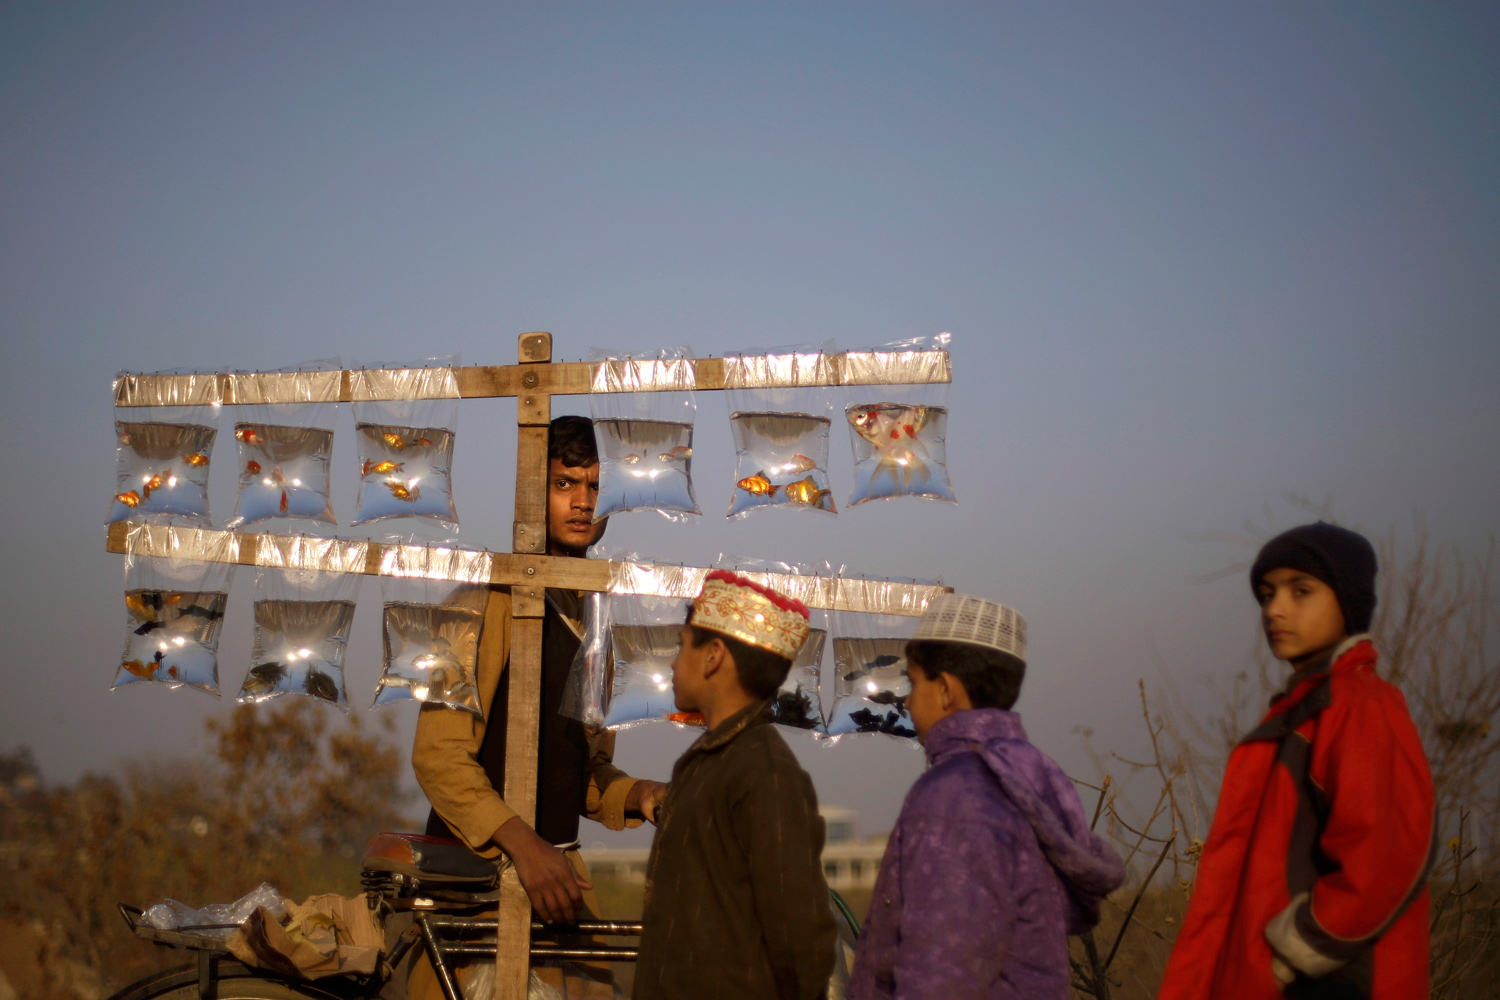 January 26, 2011. Pakistani boys gather by a vendor selling tropical fish on his bicycle on the outskirts of Islamabad, Pakistan.